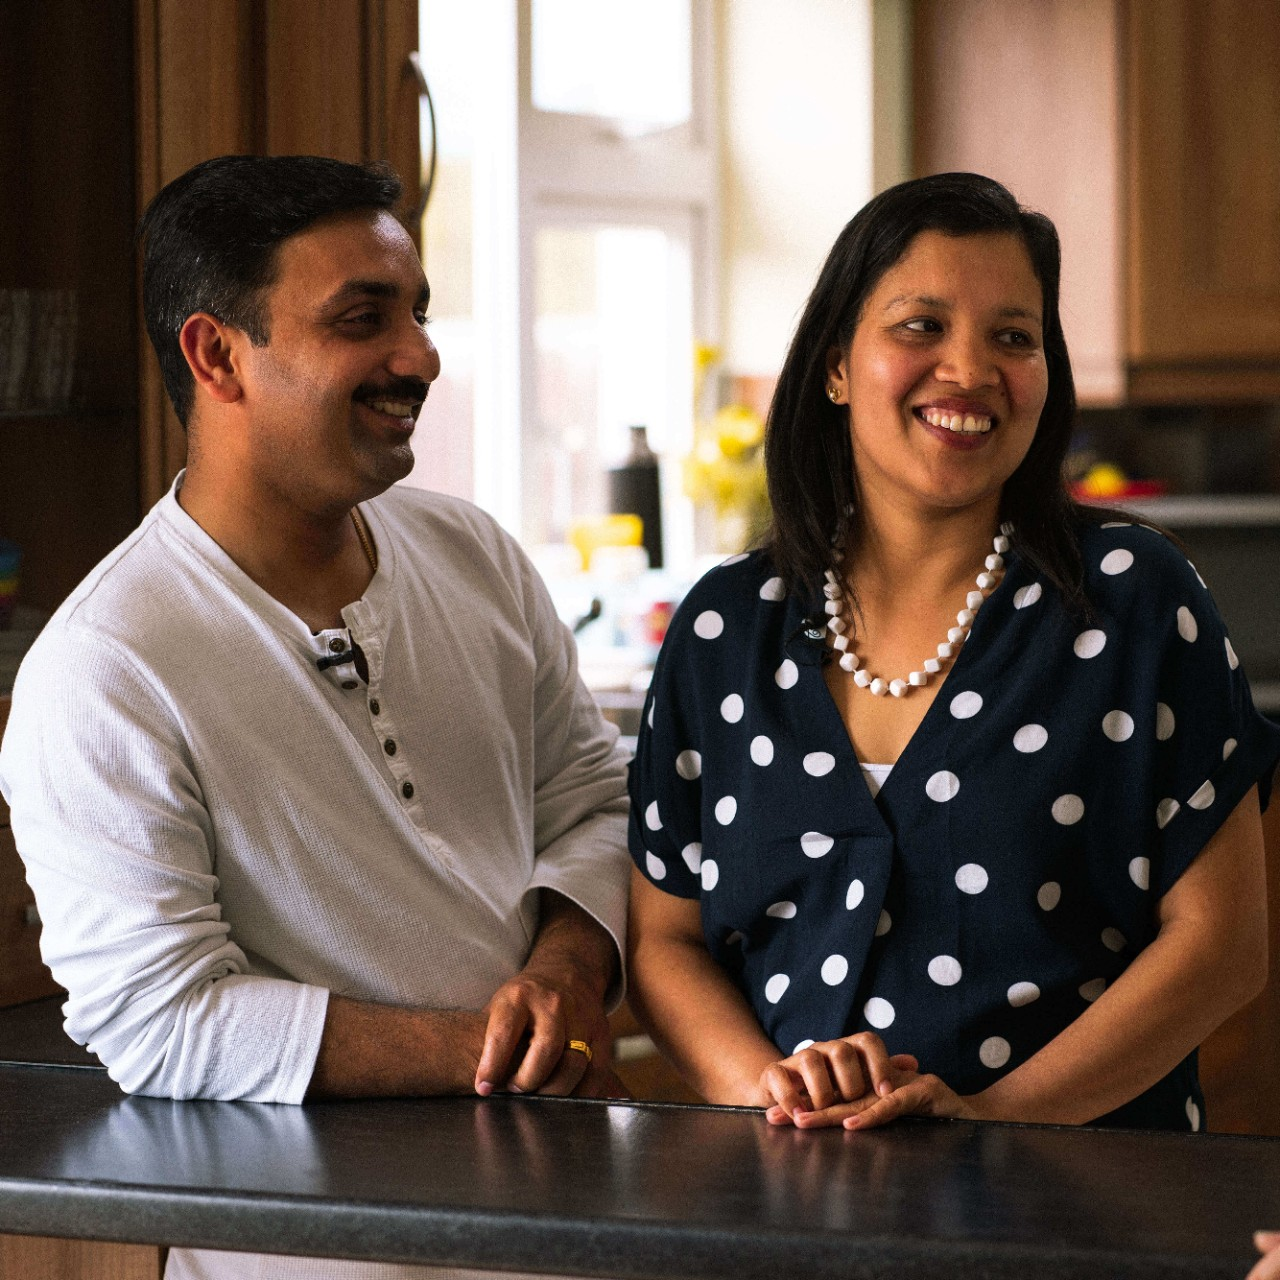 Biji & Sithosh smiling together in the kitchen of their new home.